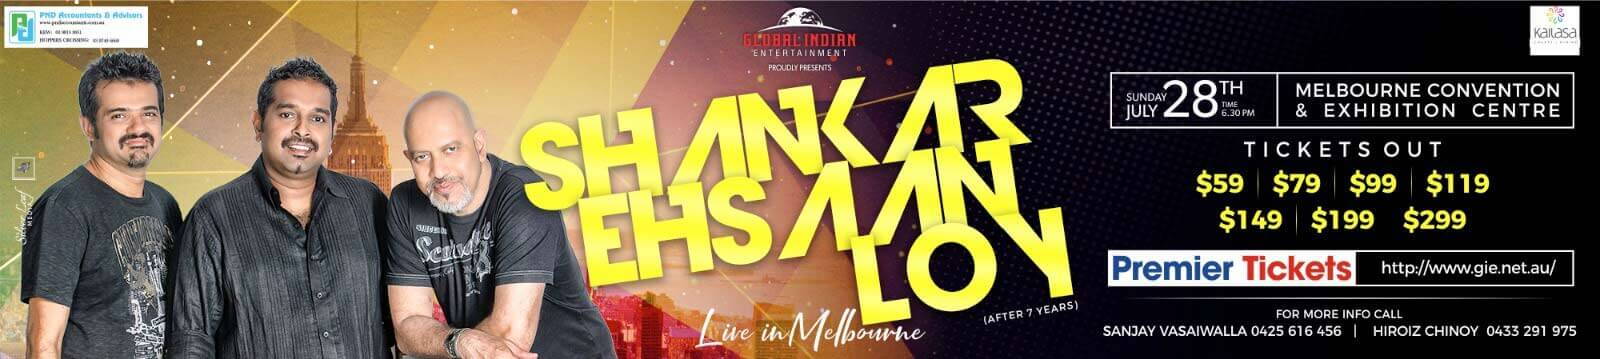 Shankar Ehsaan and Loy in Melbourne